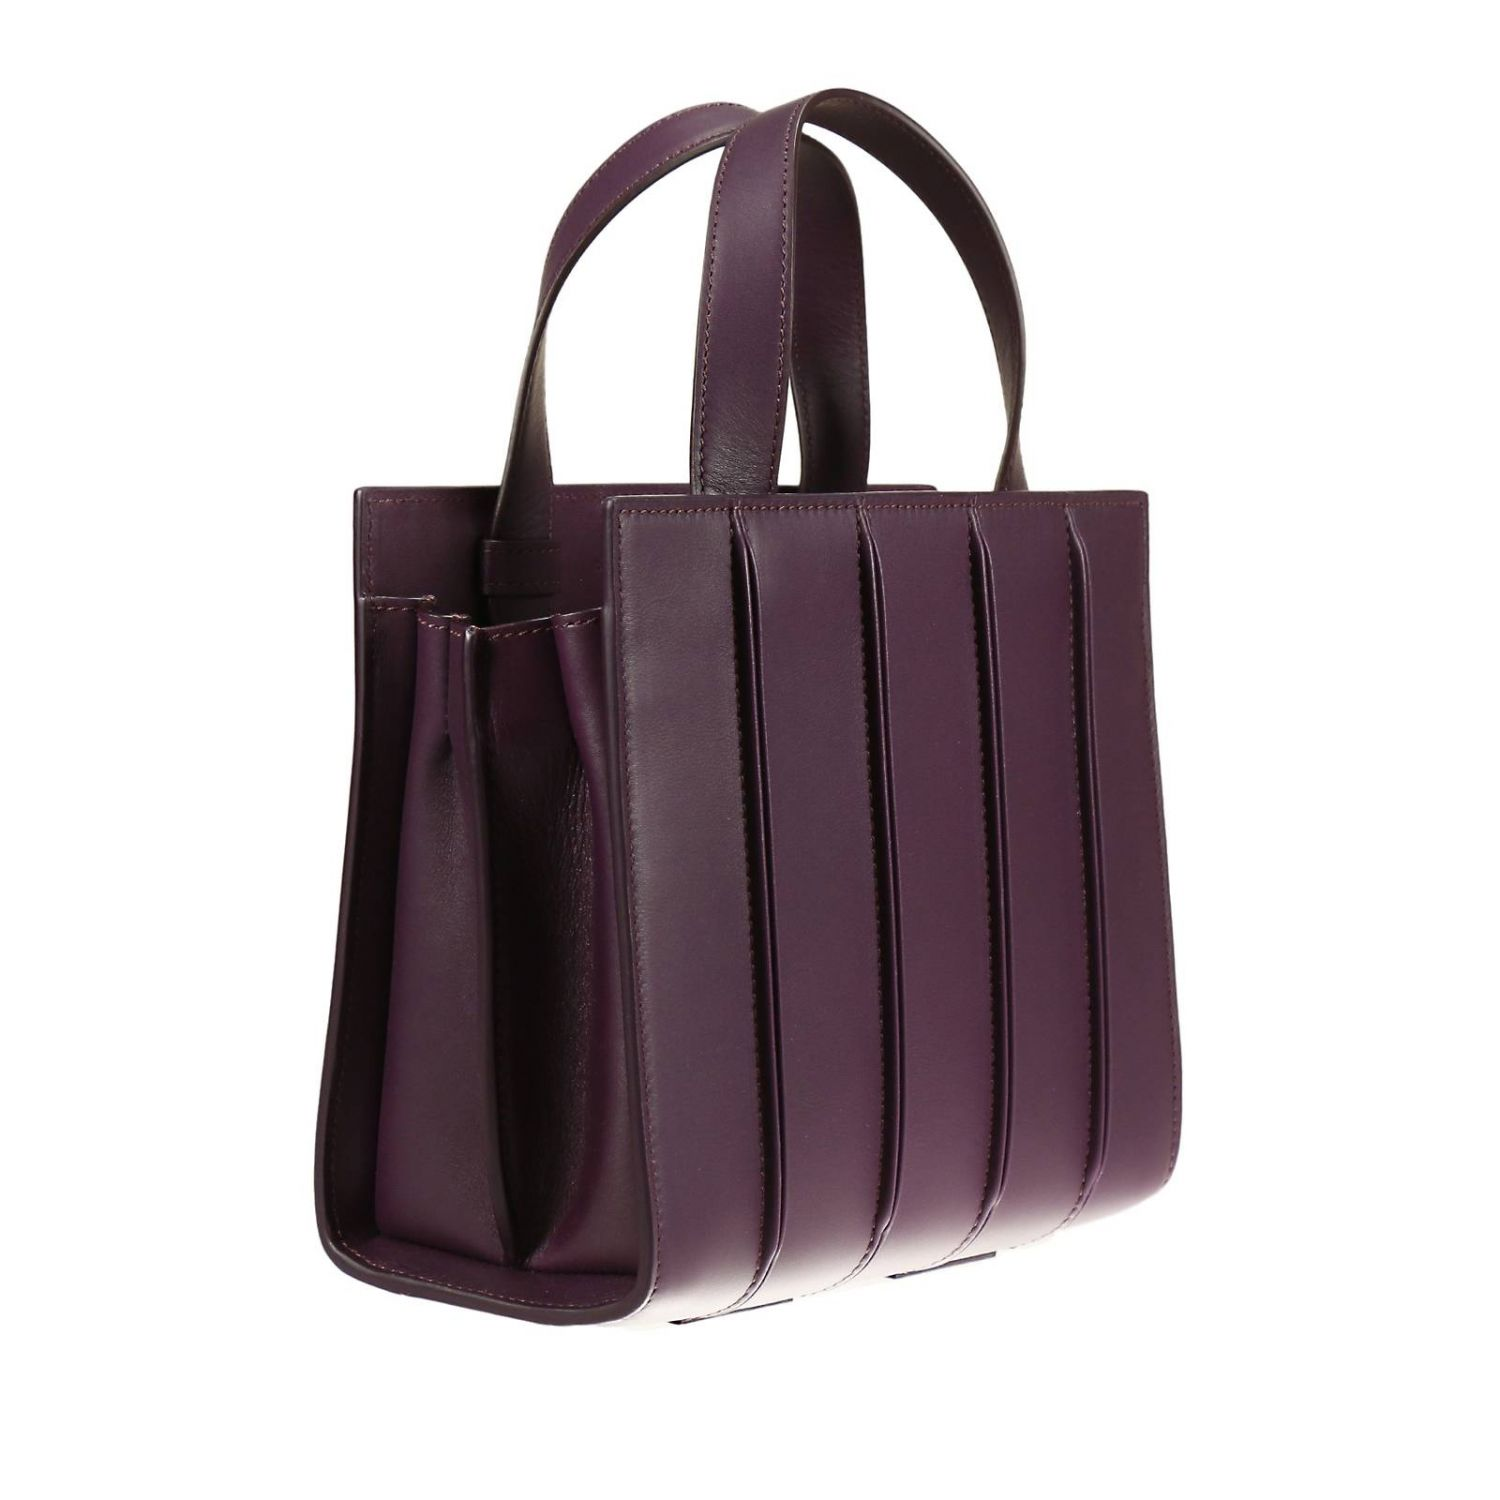 Whitney Bag  Max Mara